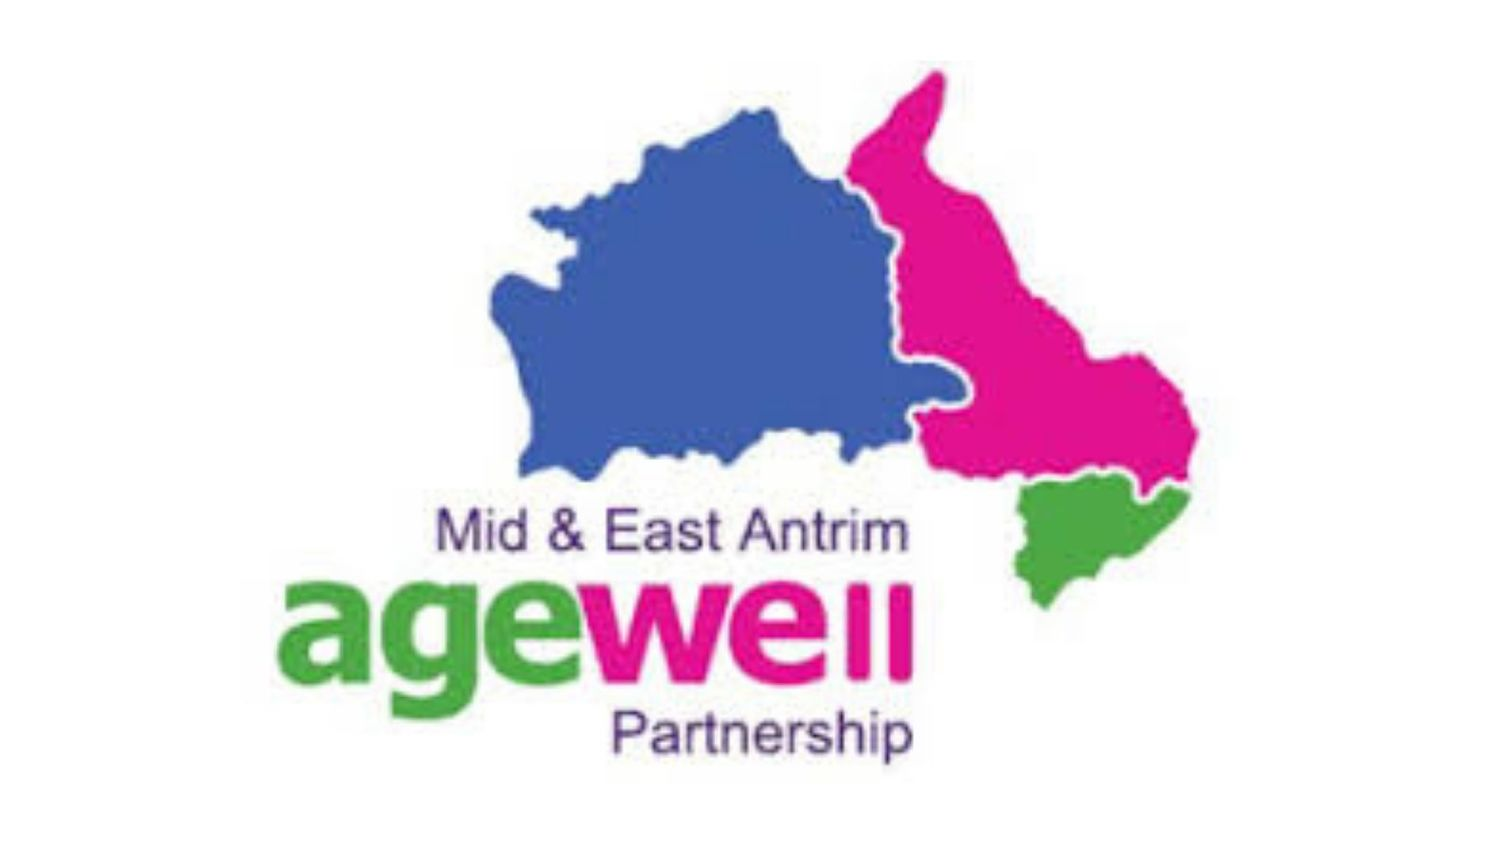 Mid & East Antrim Agewell Project